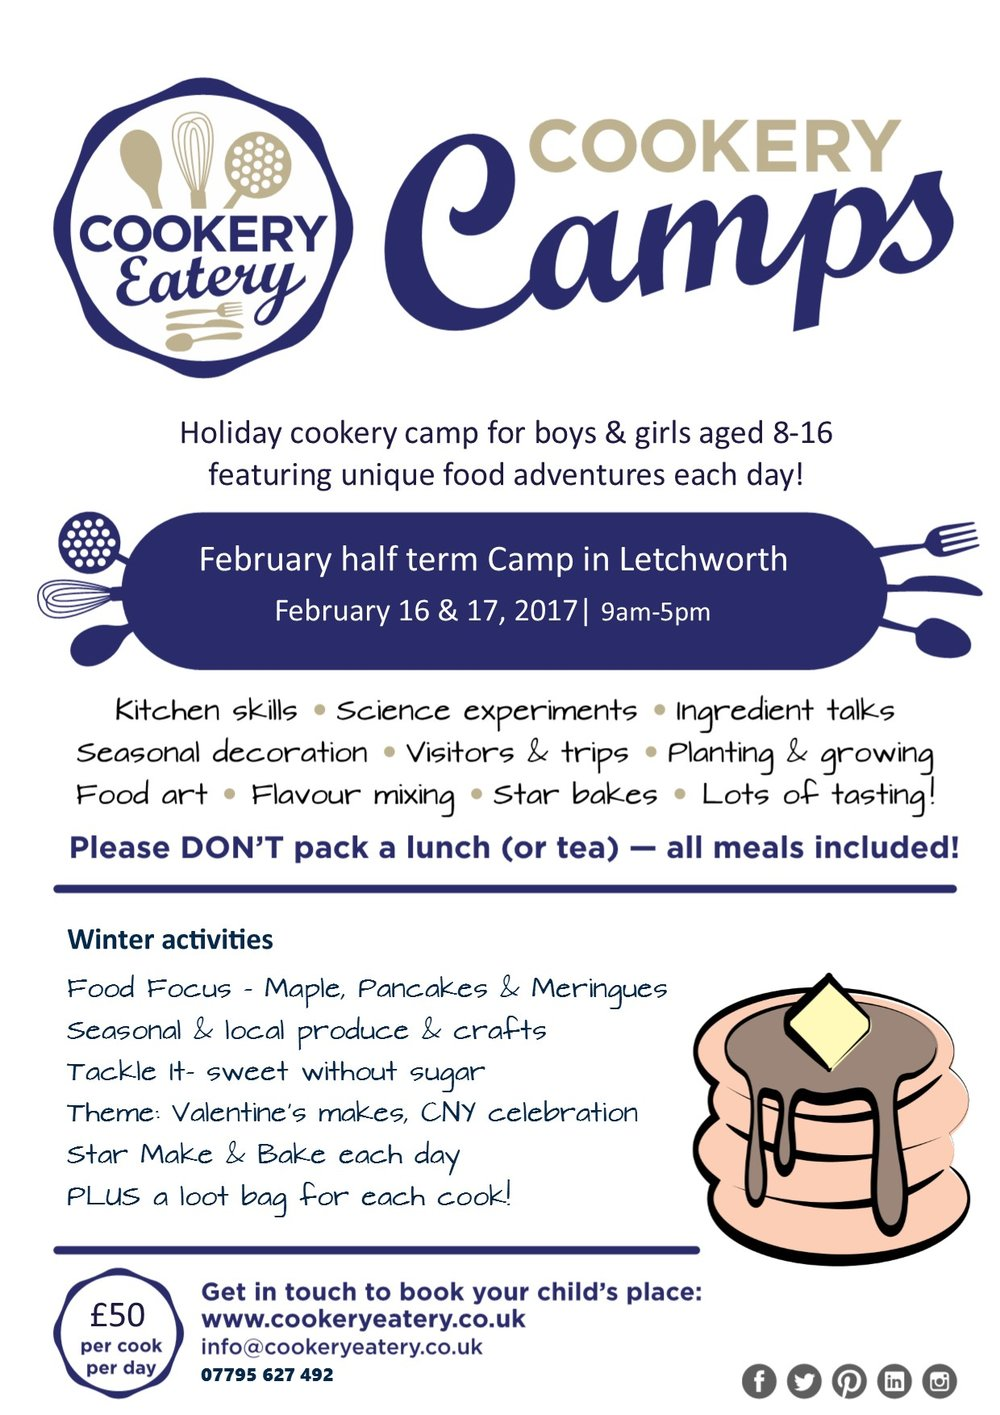 Cookery Camp.February half term 2017.Letchworth.FLYER.jpg